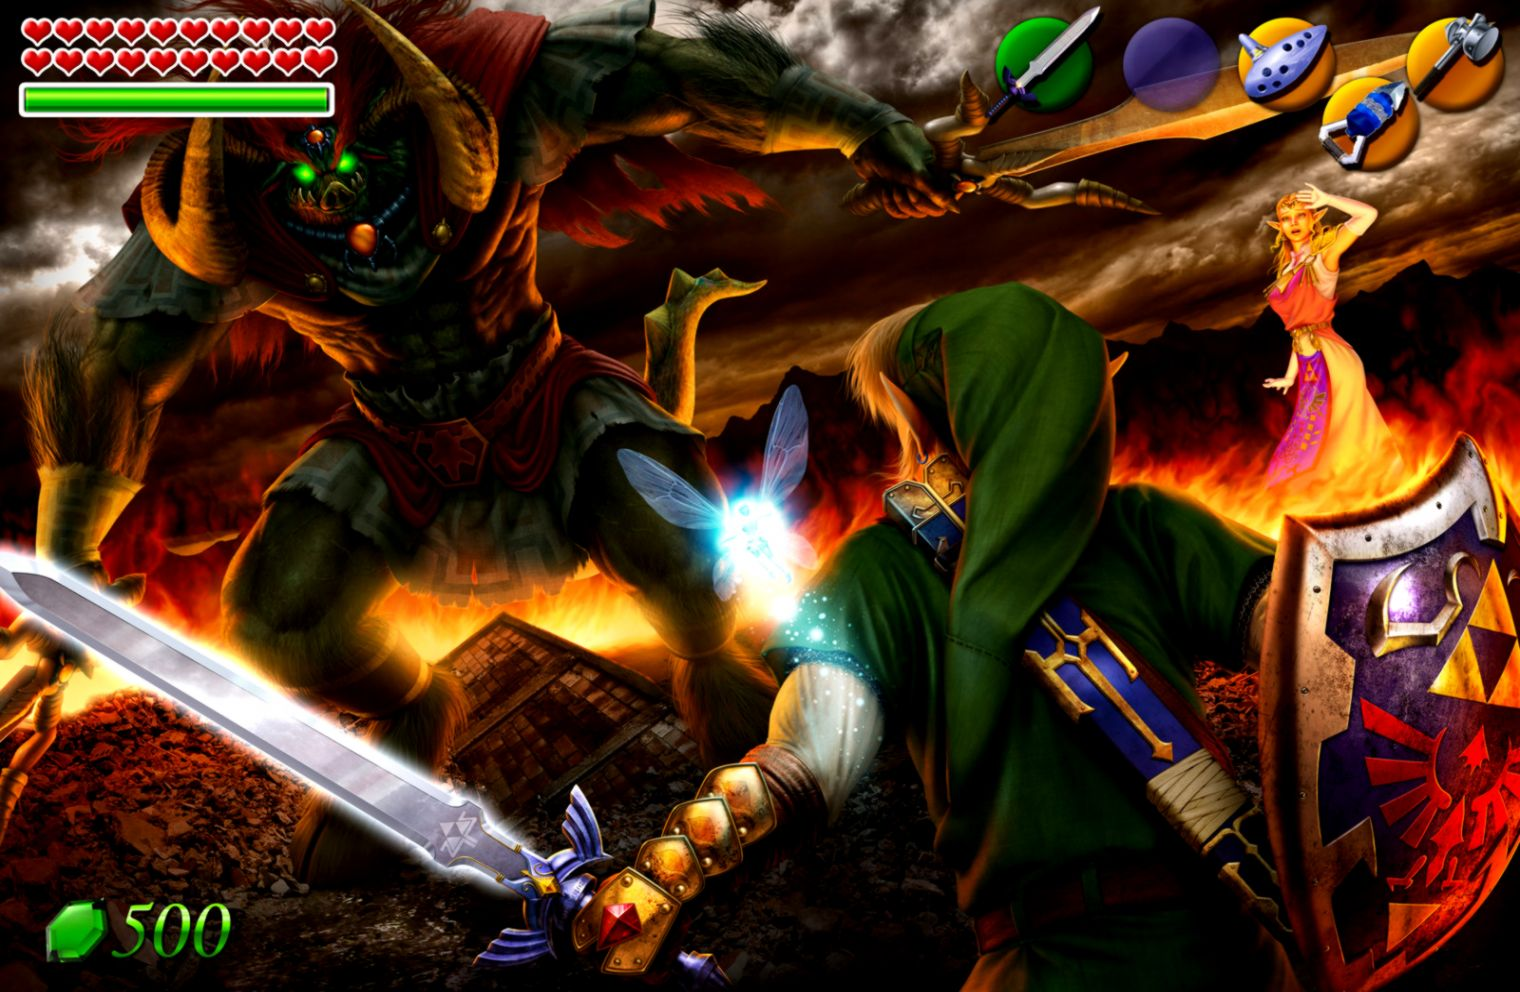 Free Download Legend Of Zelda Ocarina Of Time Desktop Background